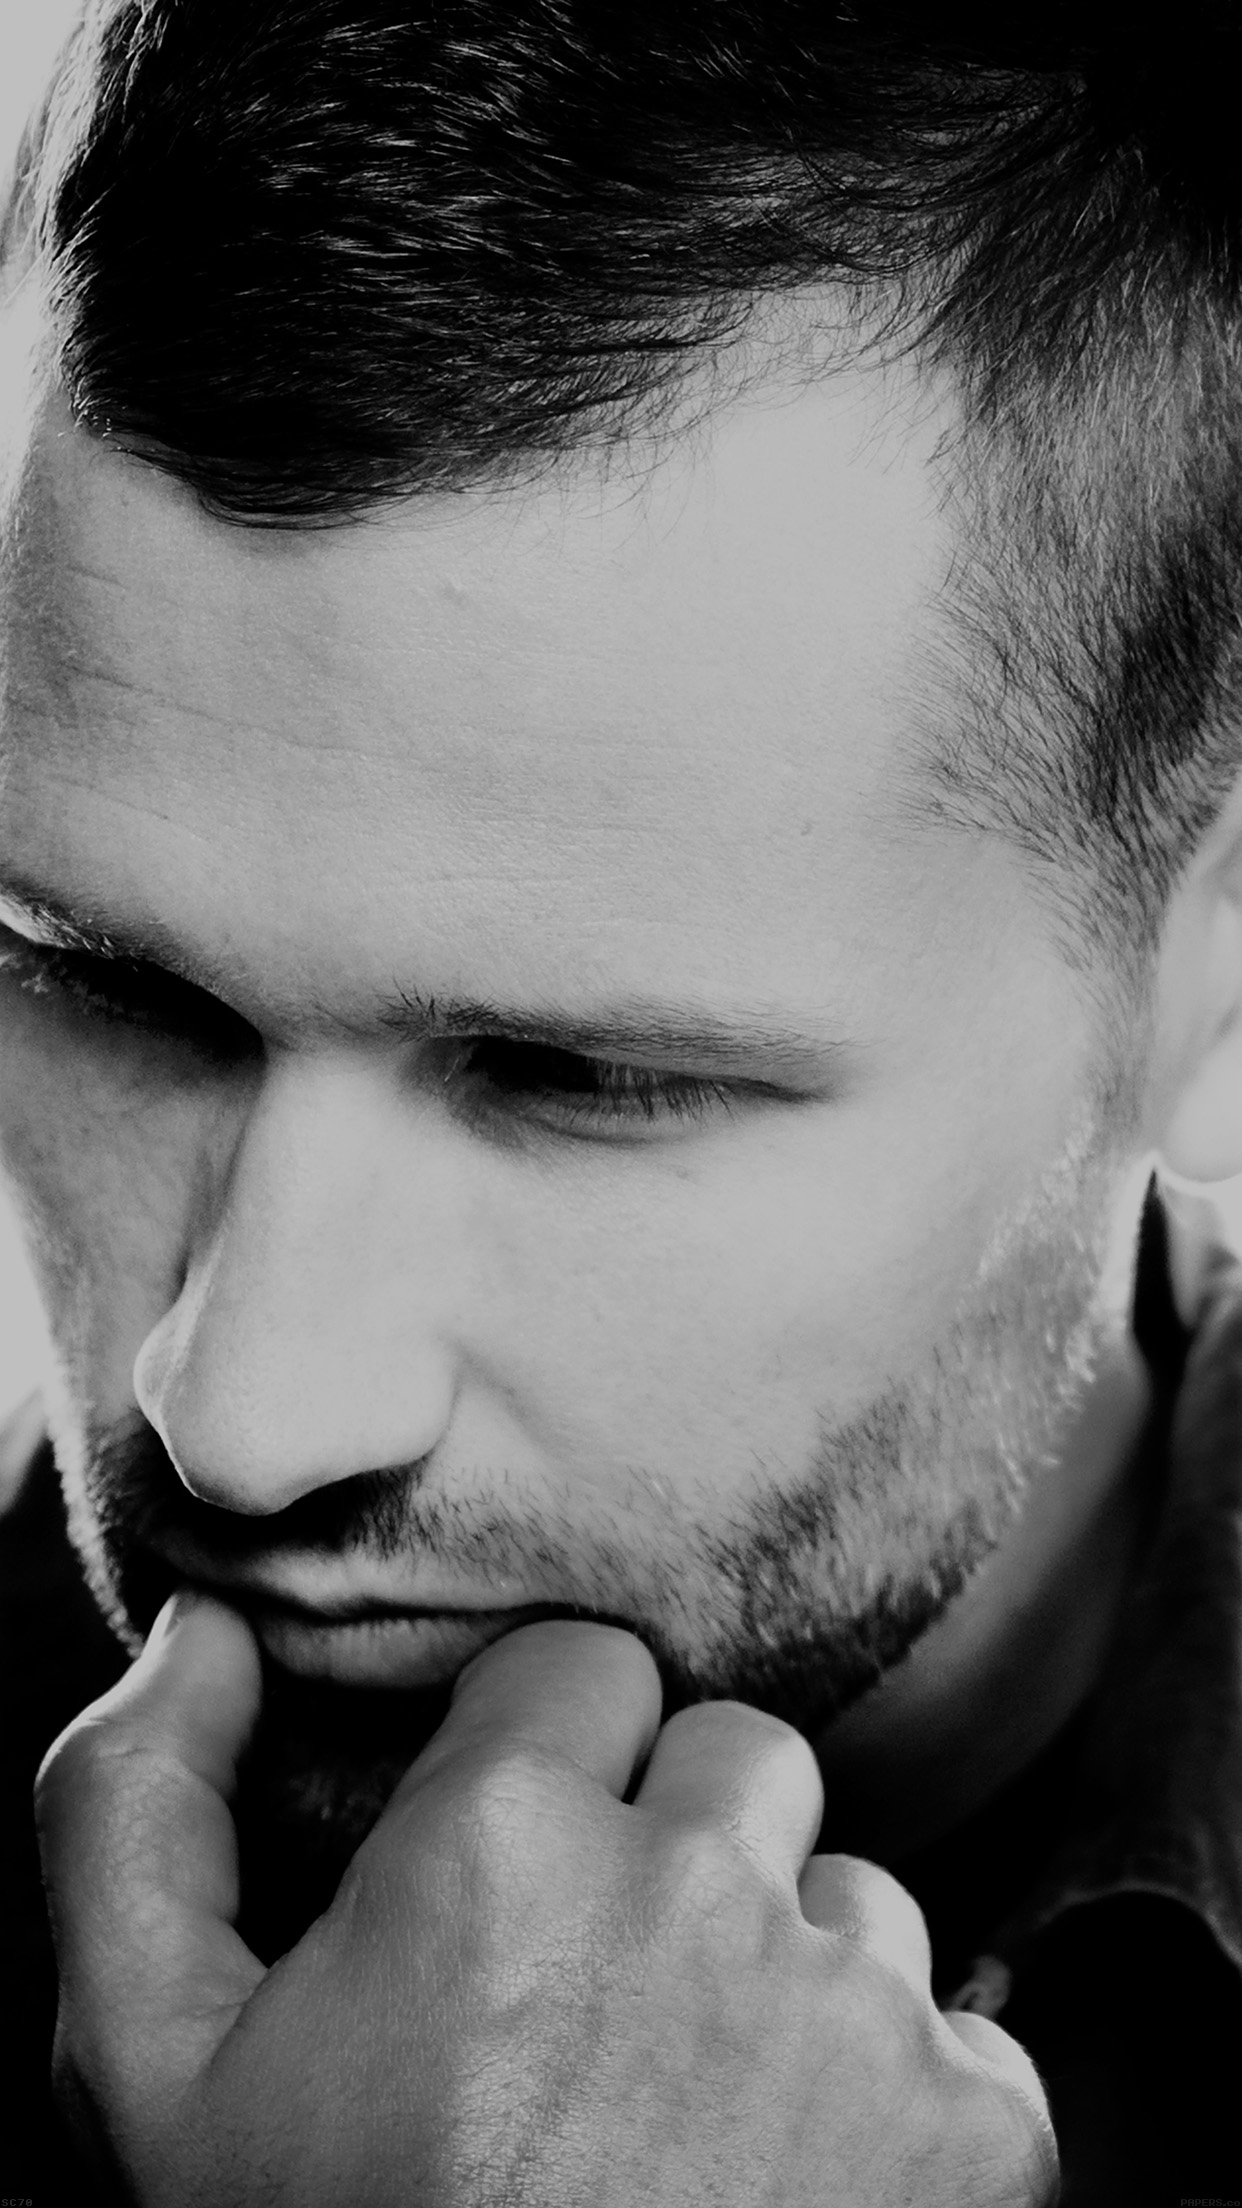 Kaskade Dj Top American Music Android wallpaper